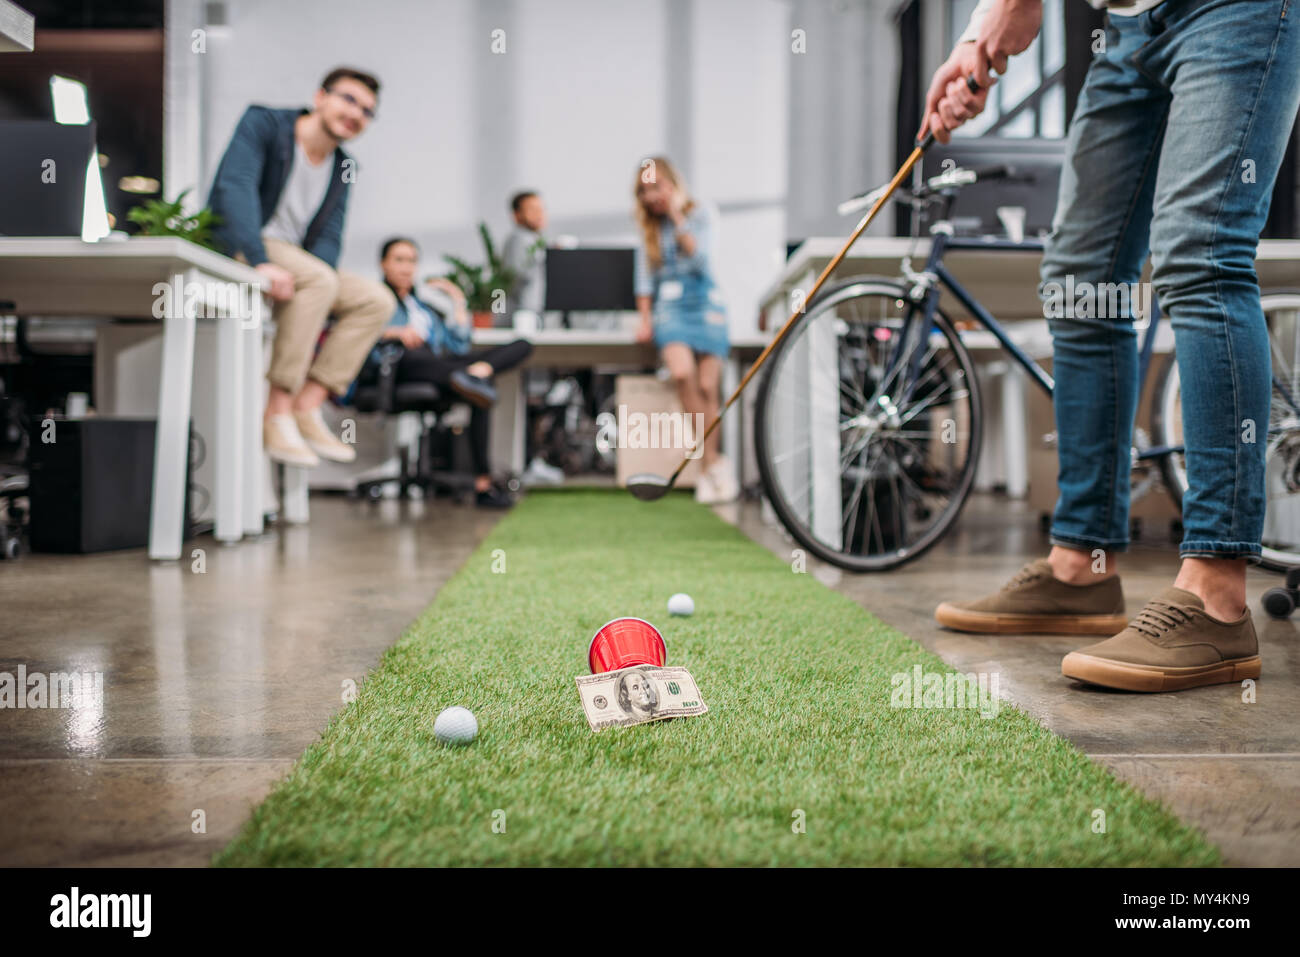 cropped image of people playing in mini golf at modern office - Stock Image